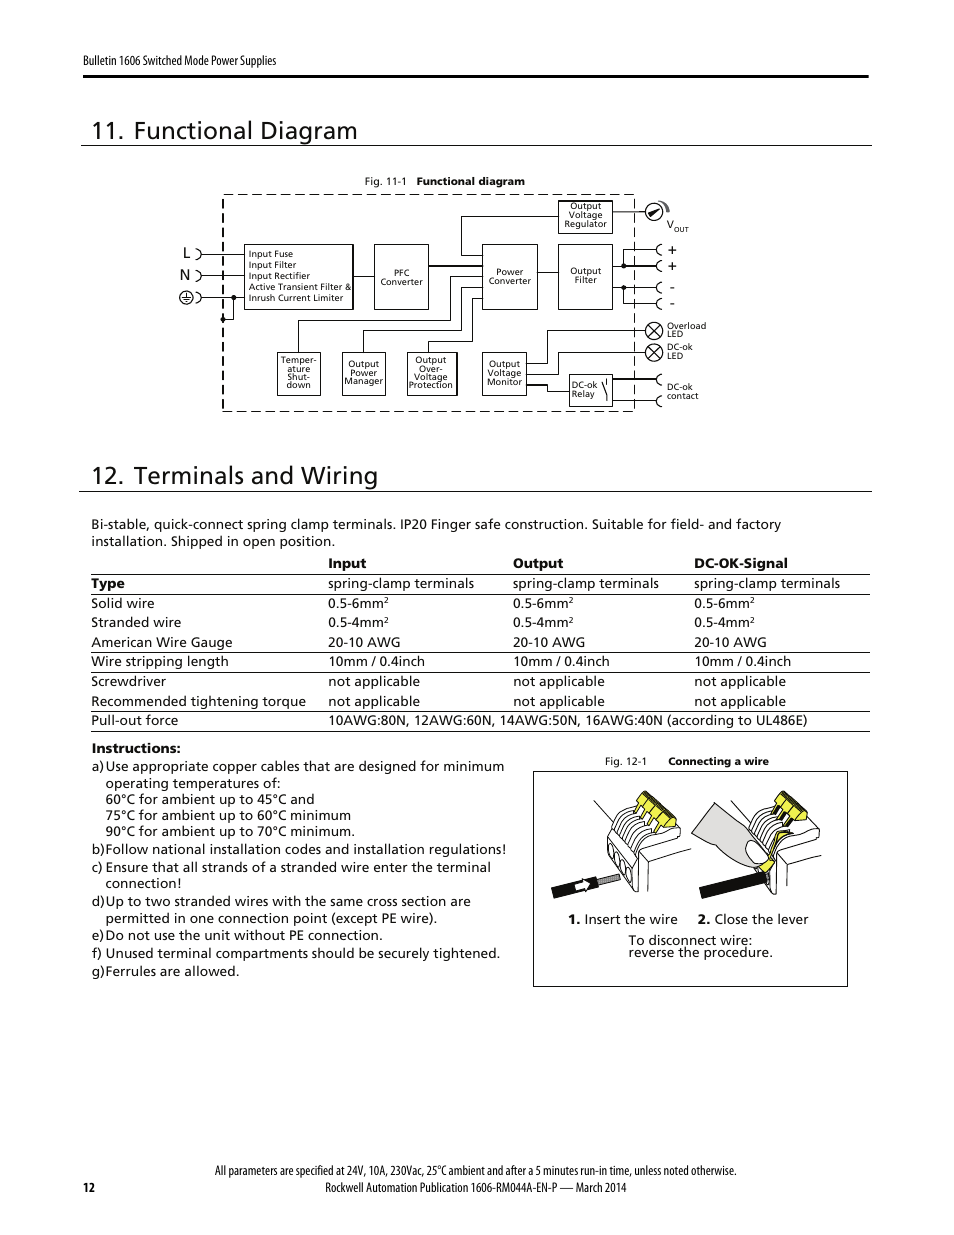 Functional Diagram Terminals And Wiring Rockwell Automation 1606 230 Vac Xls240e Xls240ea Xls240ec D Power Supply Reference Manual User